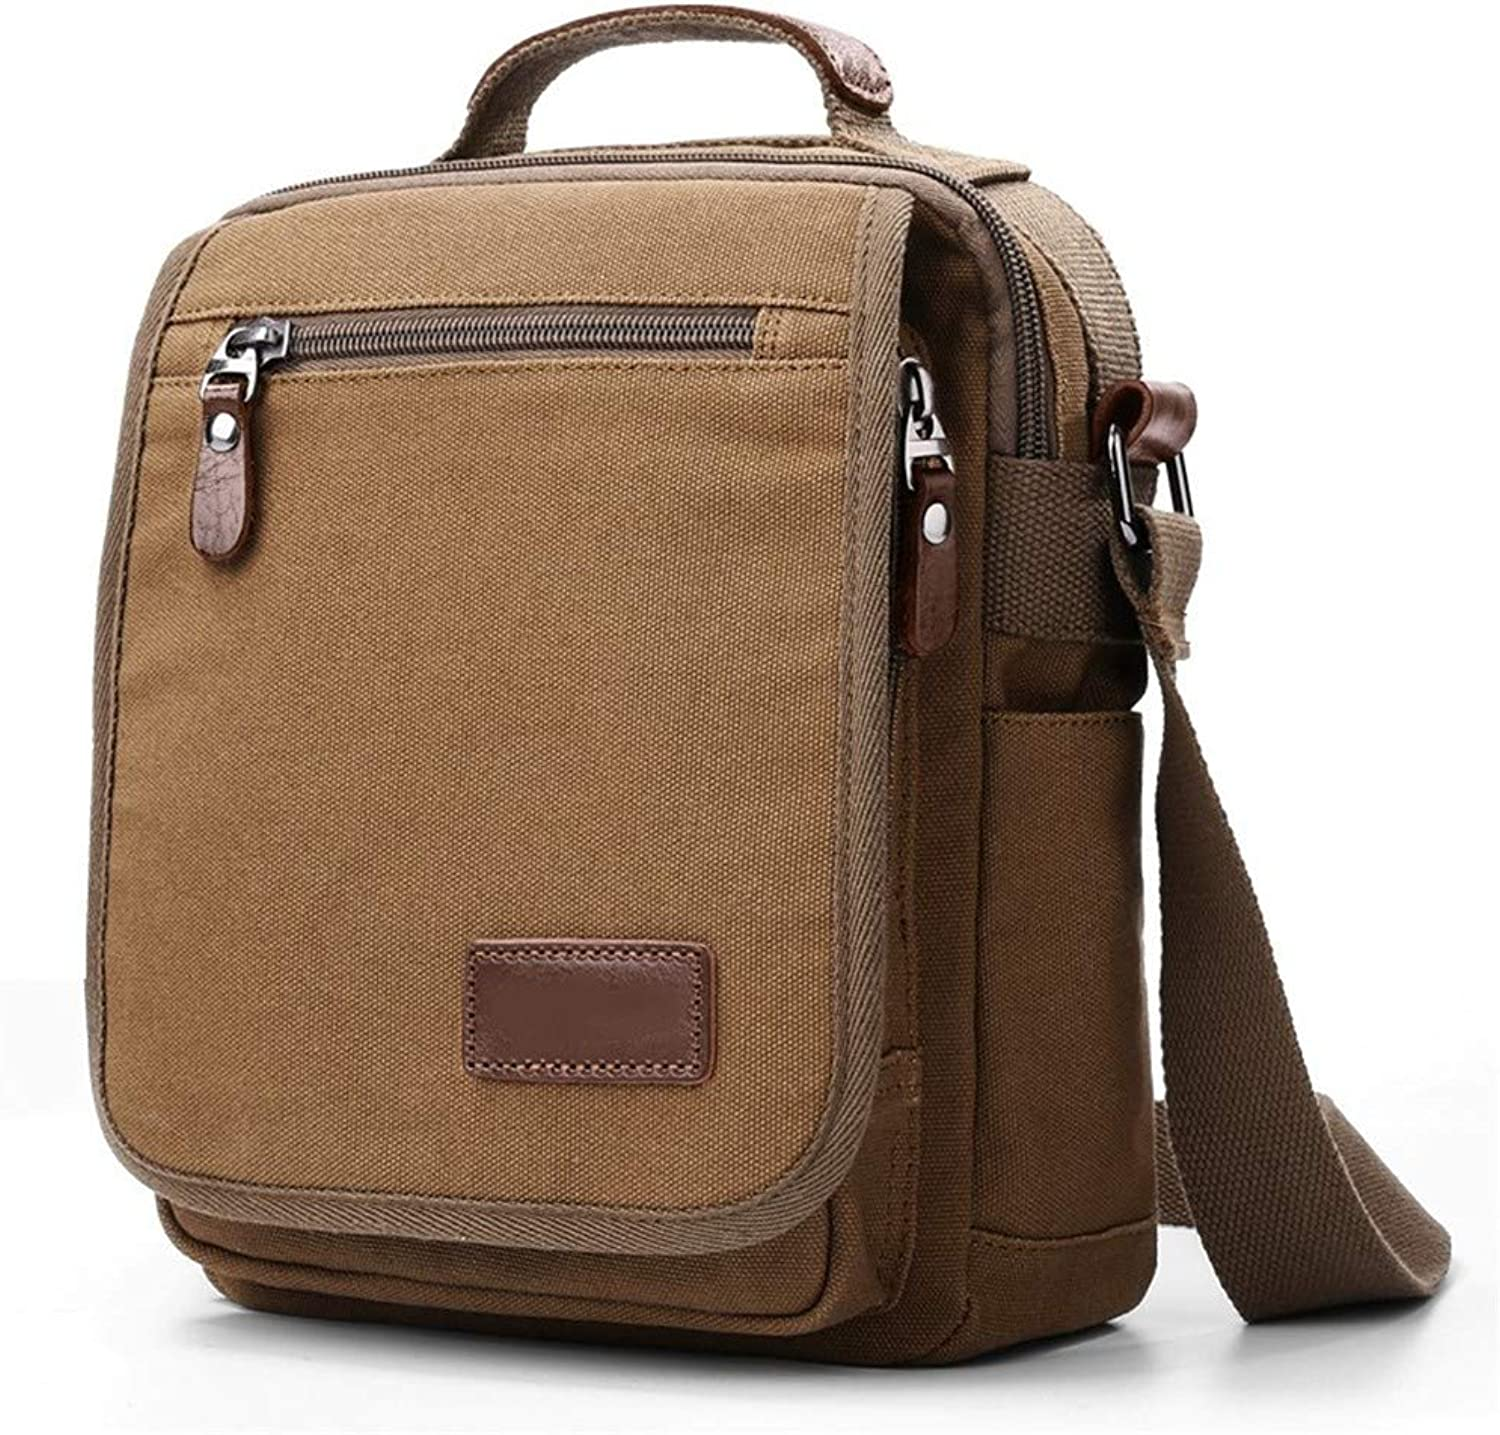 Shoulder Bag Men's Messenger Bag Business Casual Canvas Multi-Function Briefcase Backpack TrendCoffee Farbe